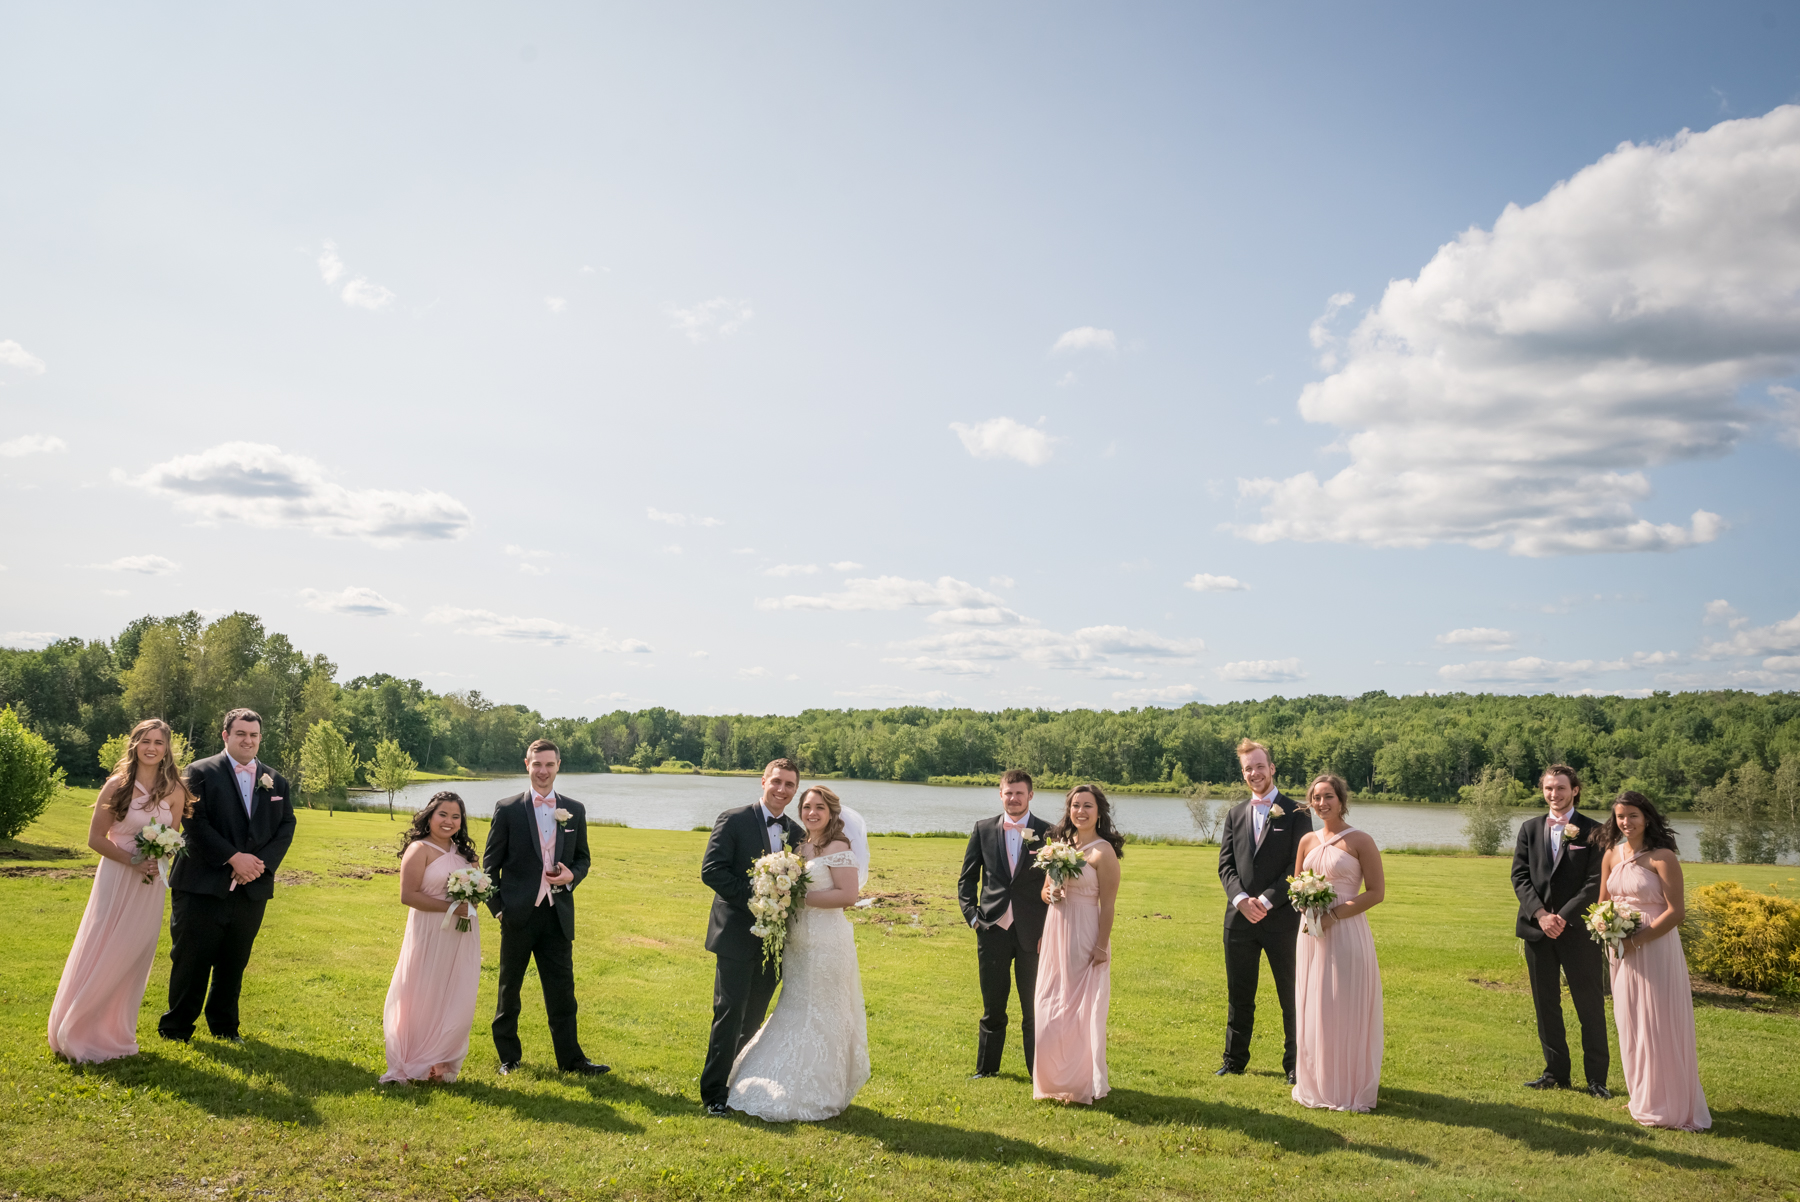 Victoria & Jared – Scott Township, PA